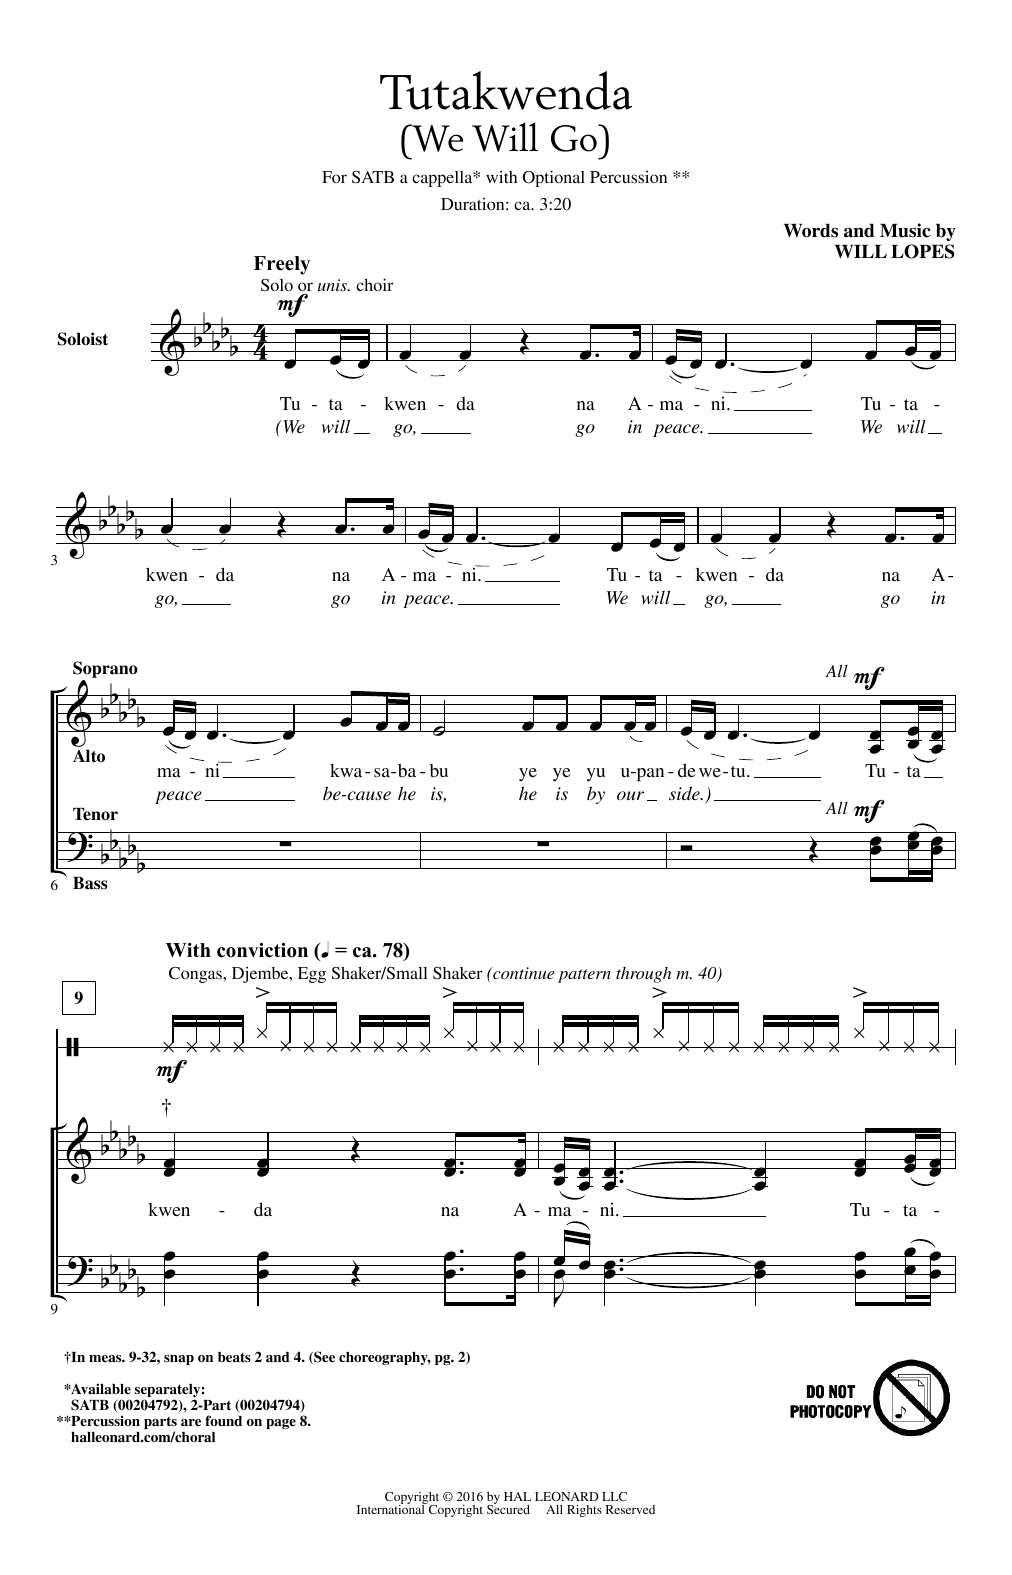 Will Lopes Tutakwenda (We Will Go) sheet music notes and chords. Download Printable PDF.